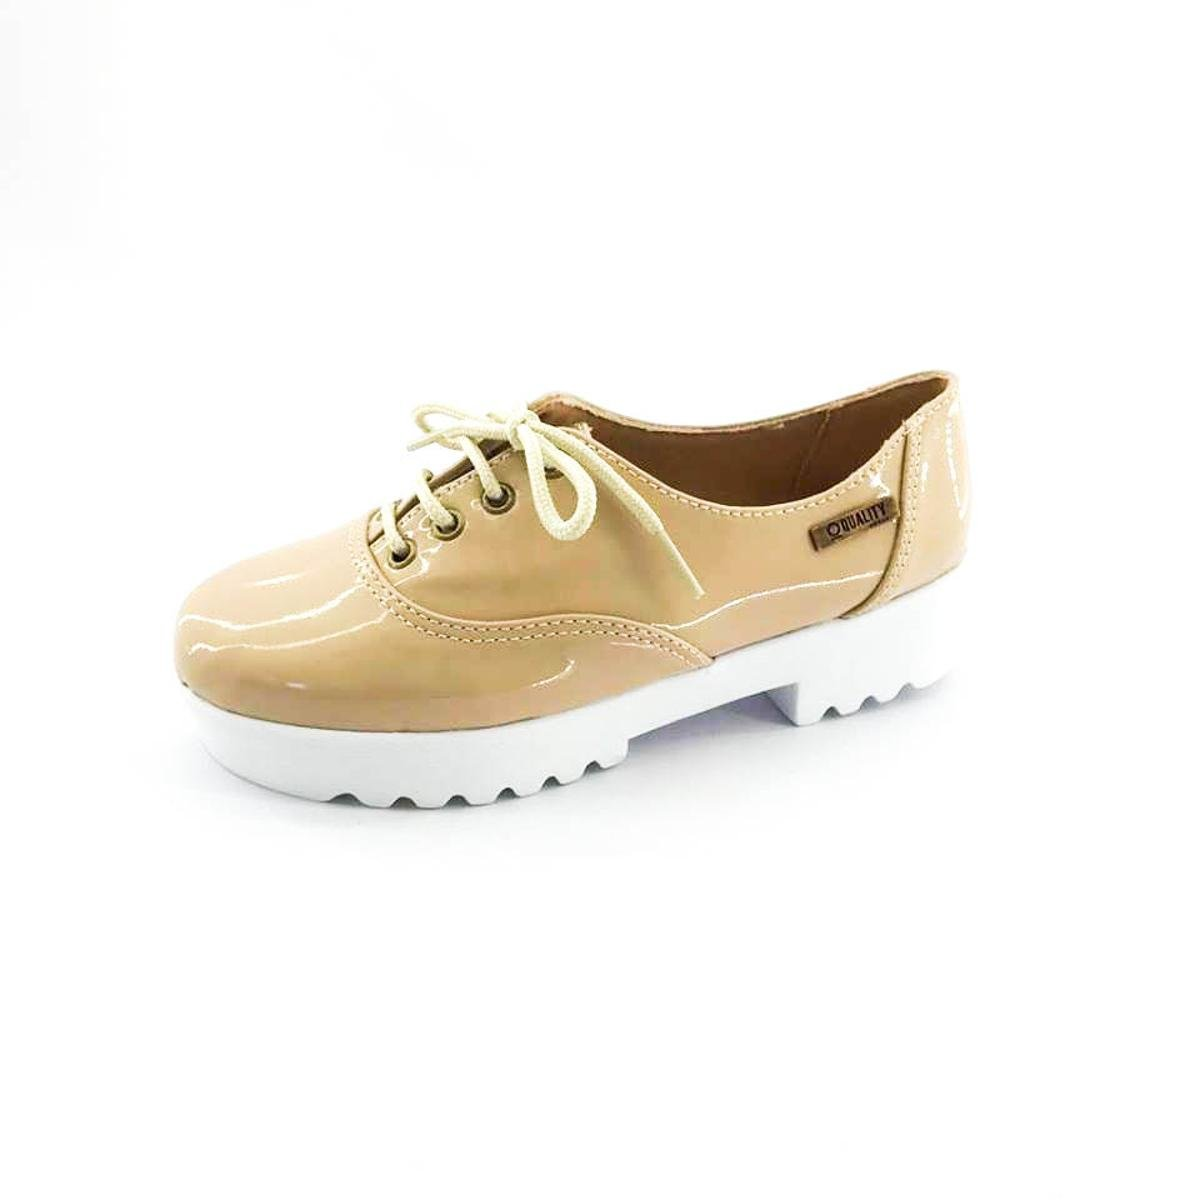 Oxford Quality Quality Shoes Bege Oxford Verniz Feminino Shoes Tratorado qgrgtw